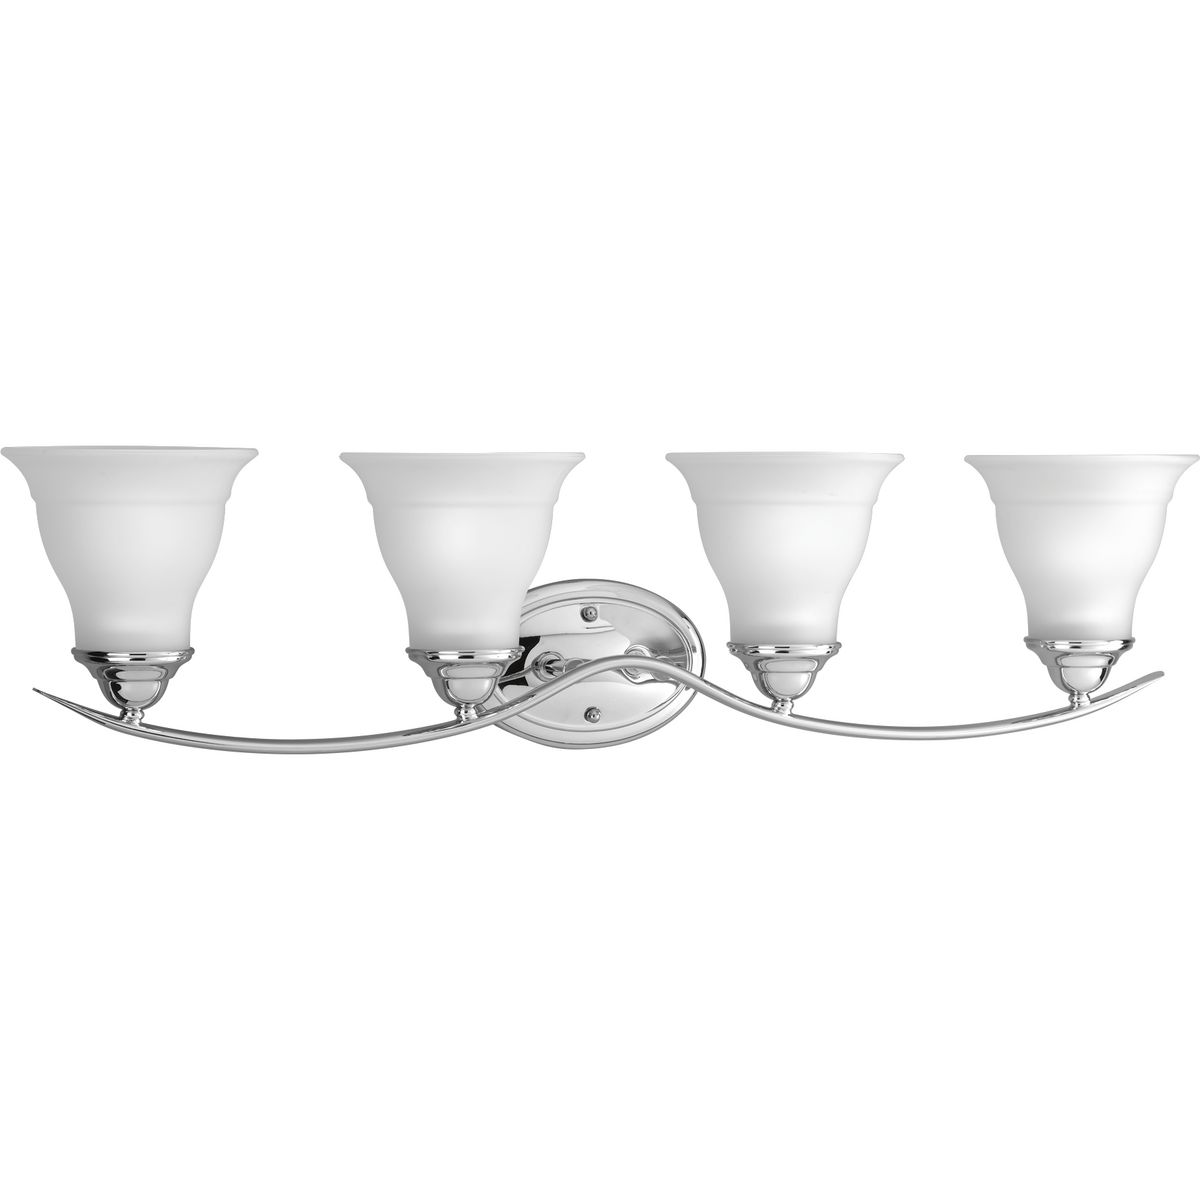 PRO P3193-15 Four Light Polished Chrome Etched Glass Vanity 4X100M